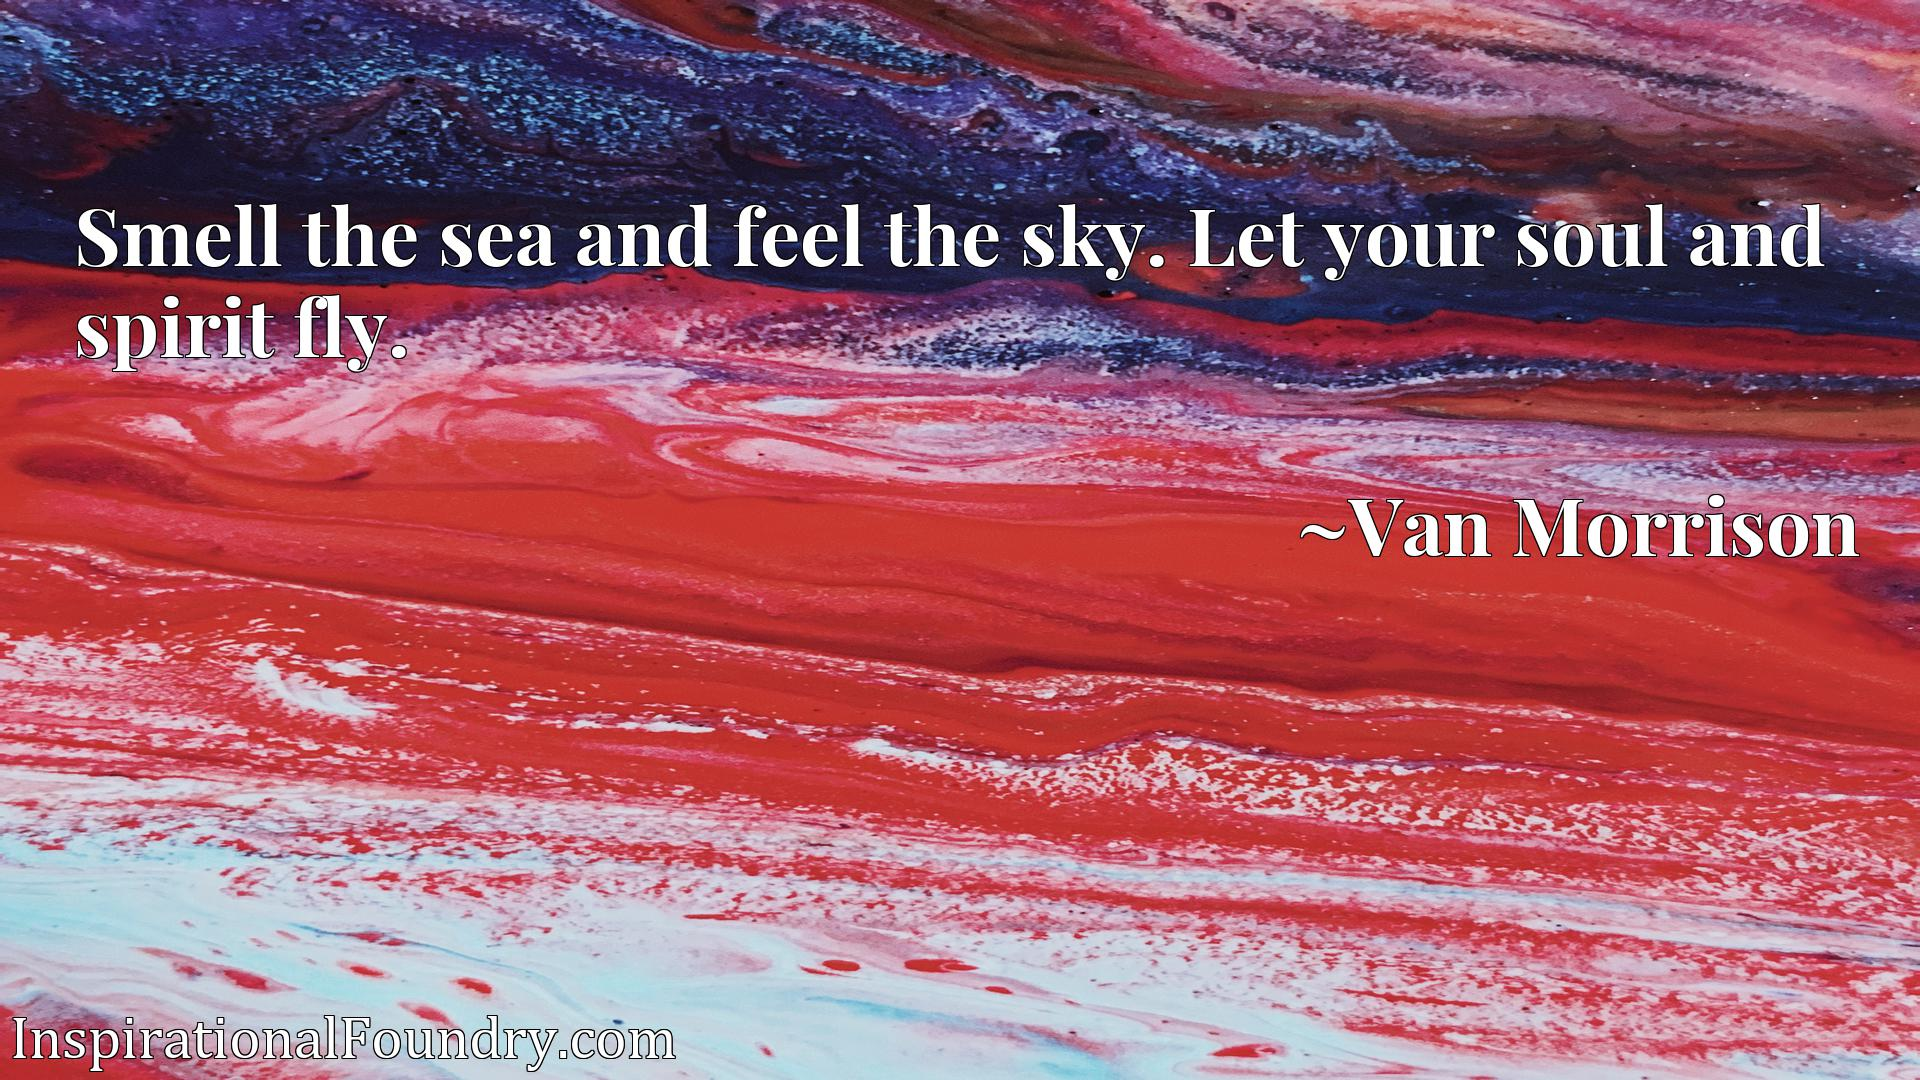 Smell the sea and feel the sky. Let your soul and spirit fly.